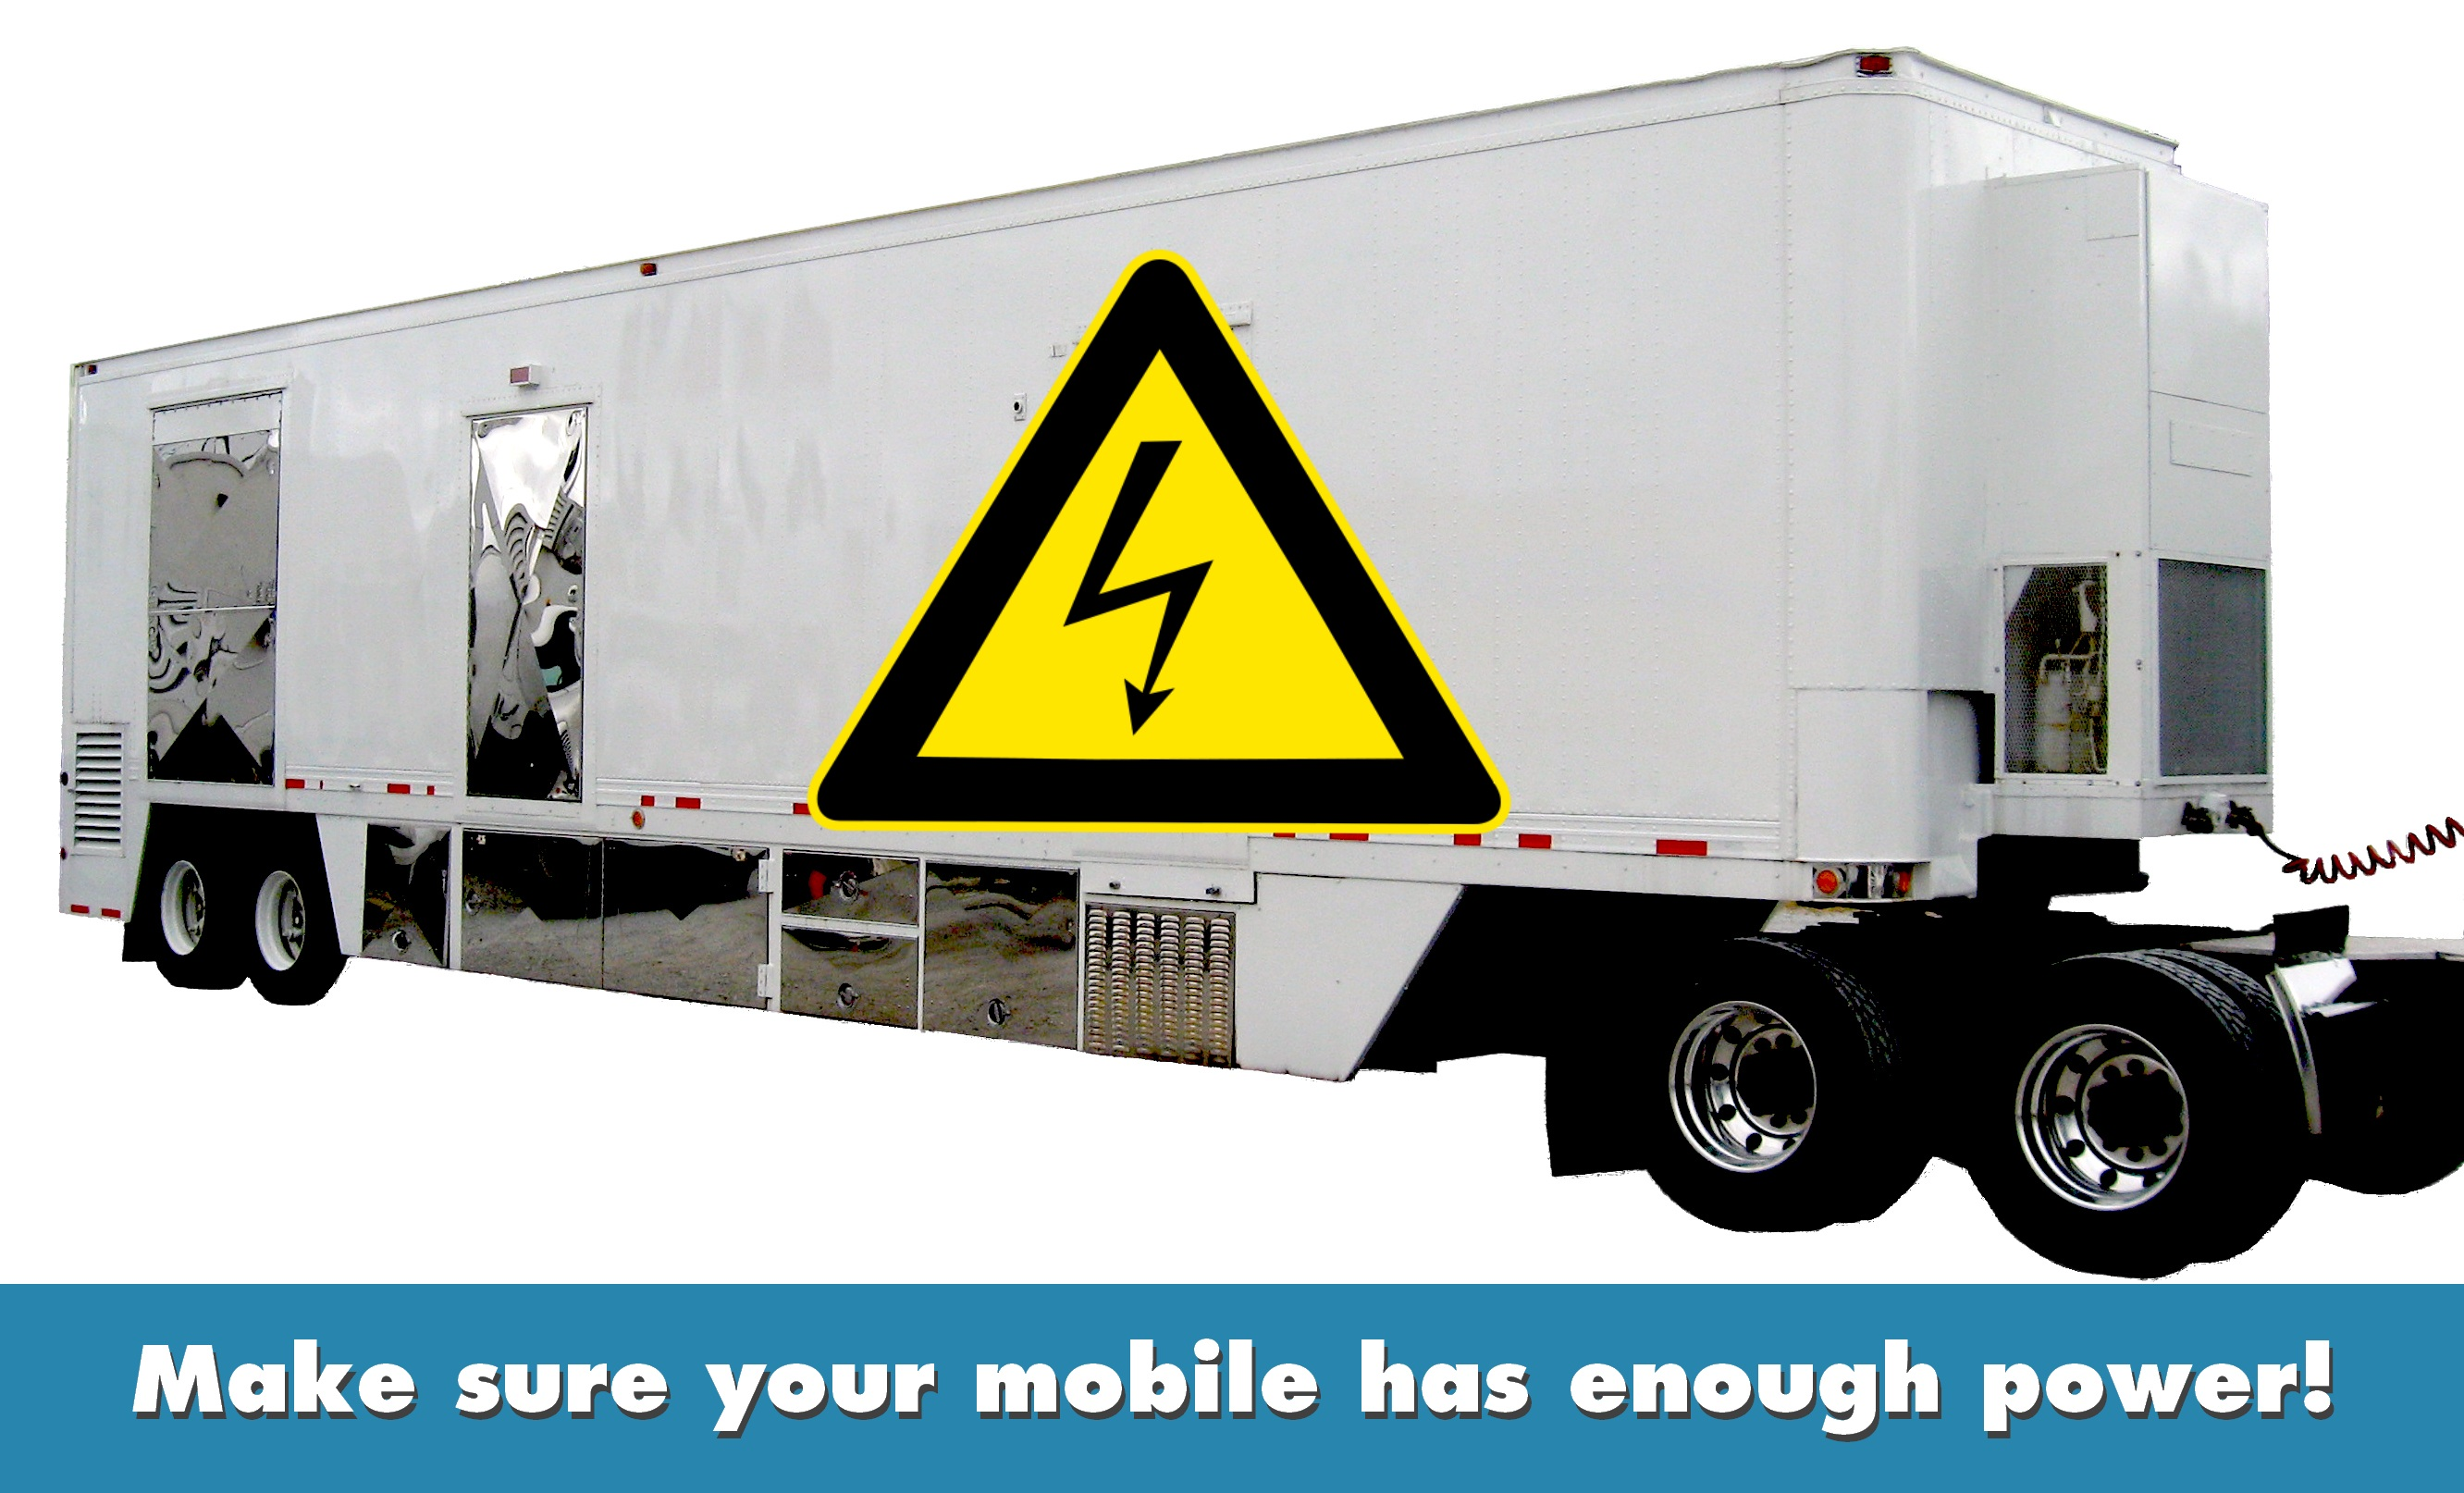 Mobile Imaging Equpment Power Requirements